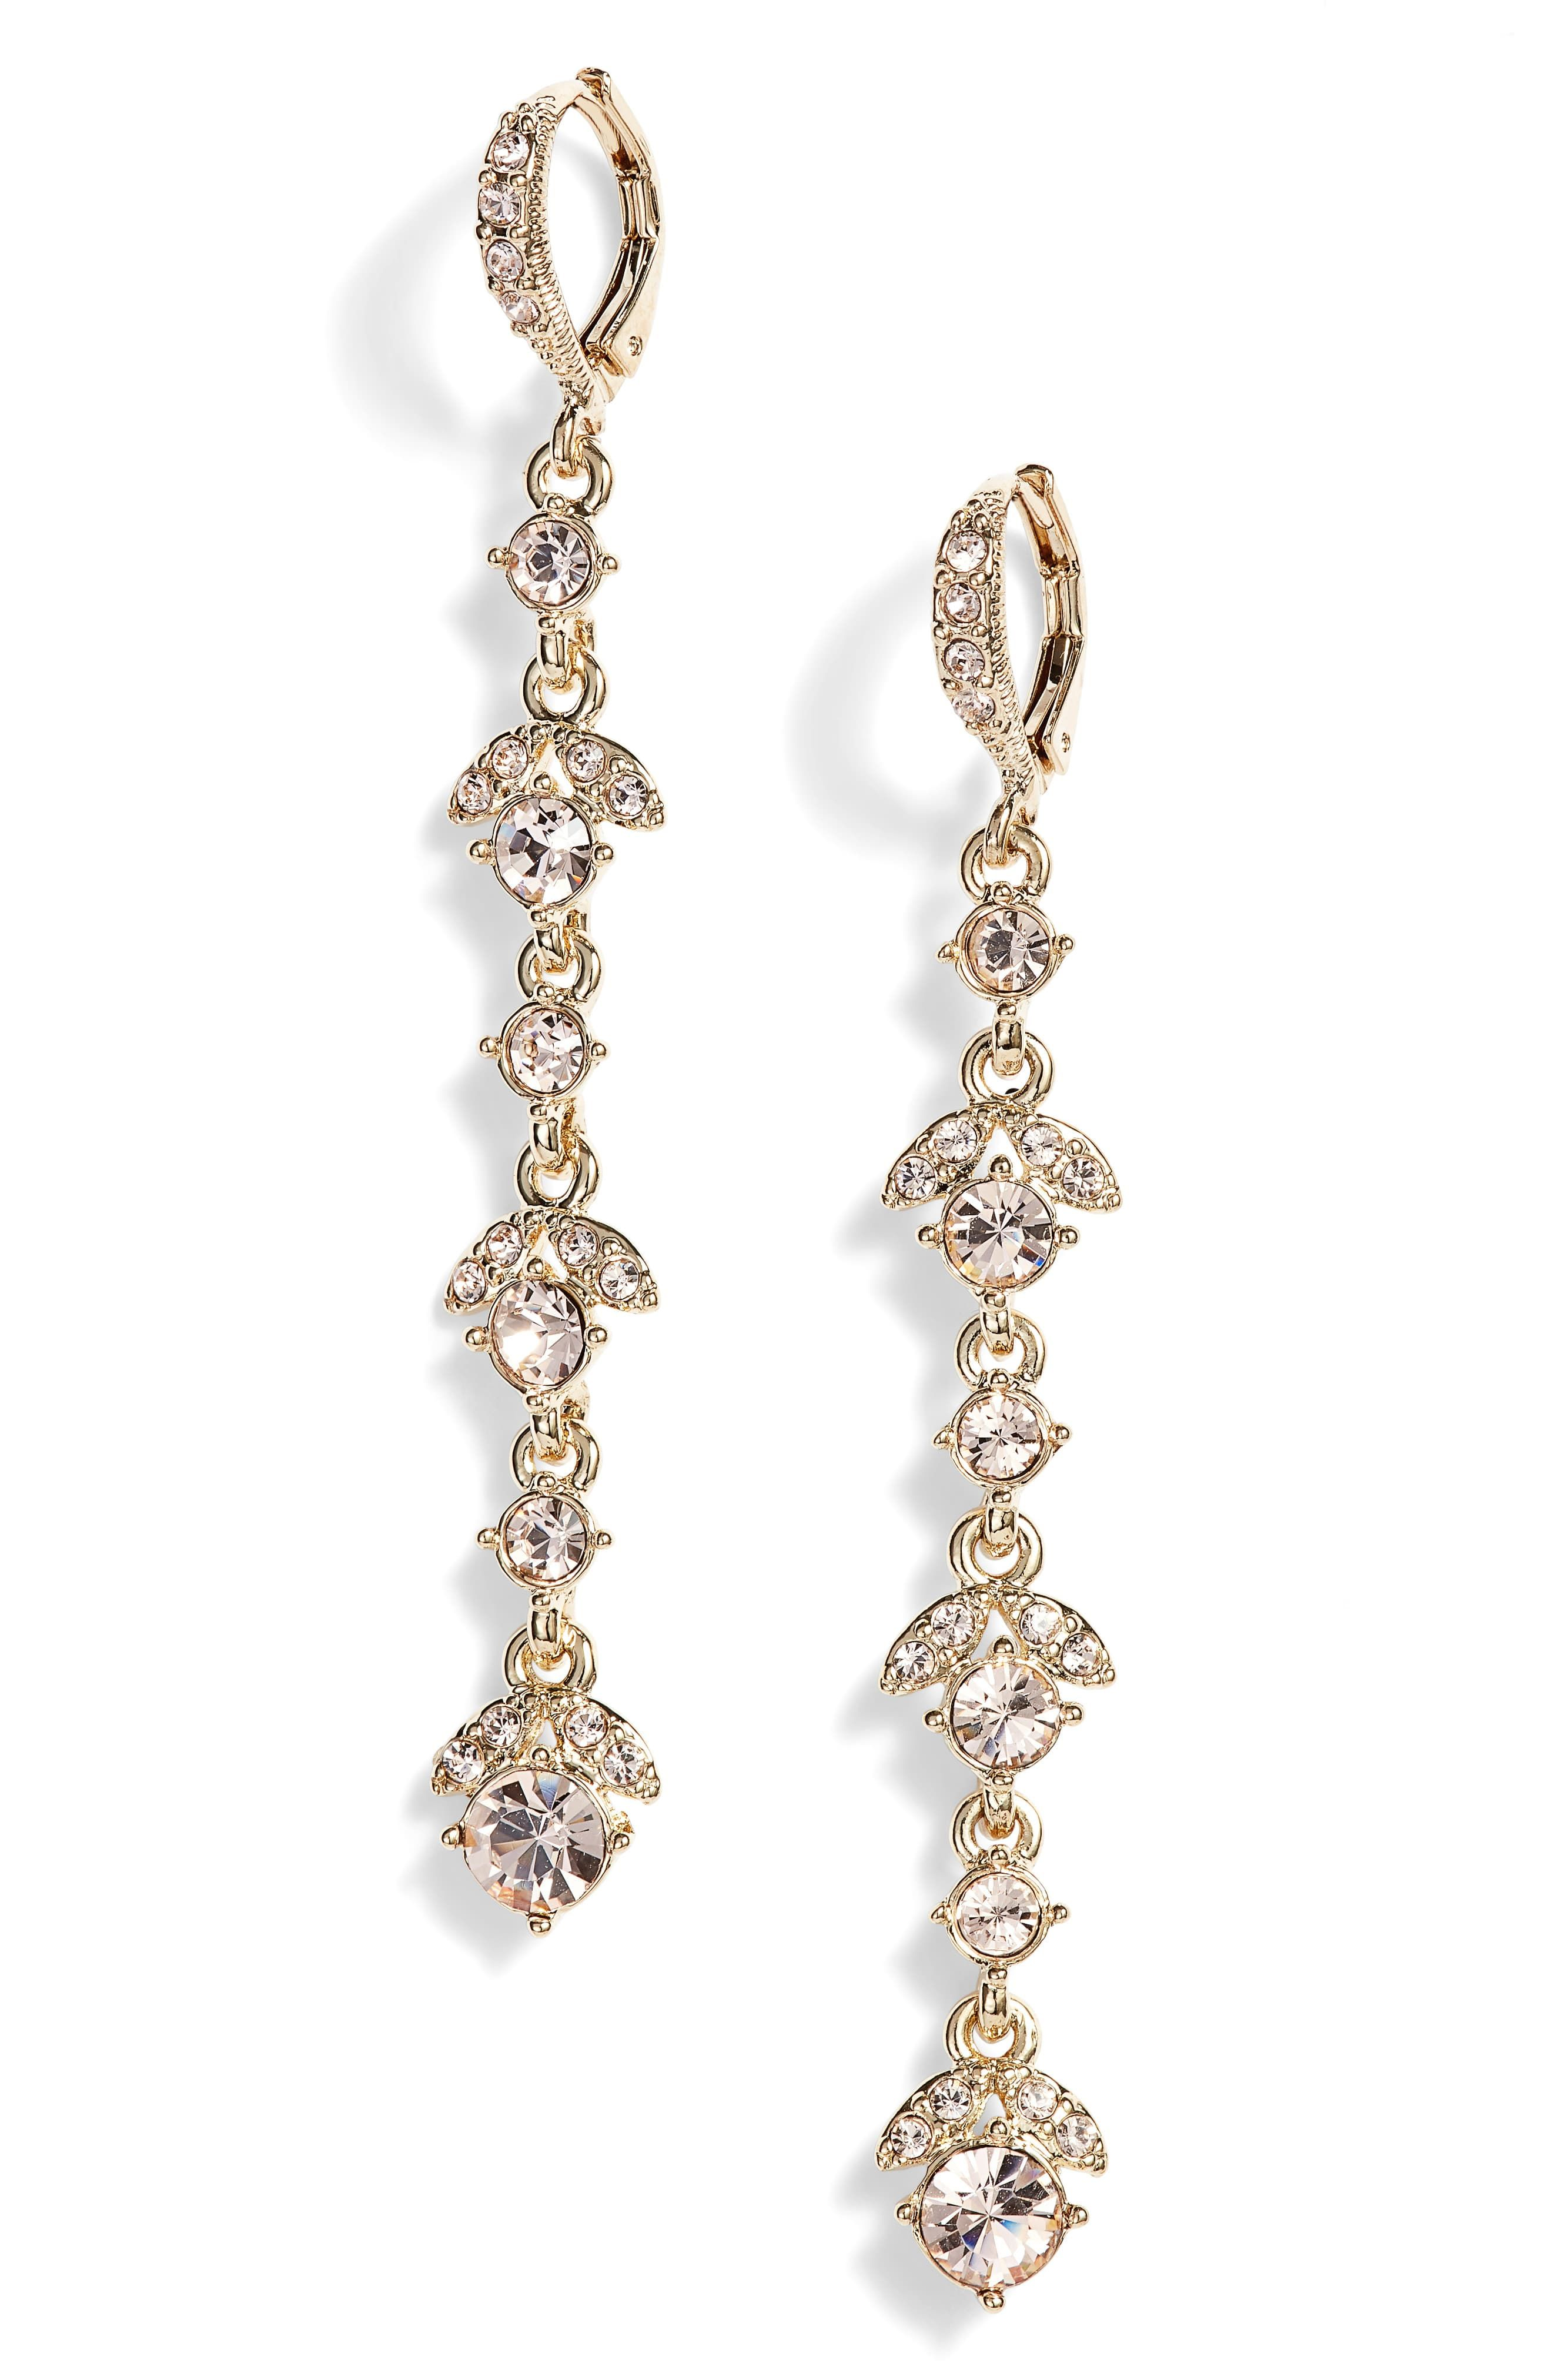 d8fd2716b4737 Women's Givenchy Crystal Linear Drop Earrings   Products in 2019 ...